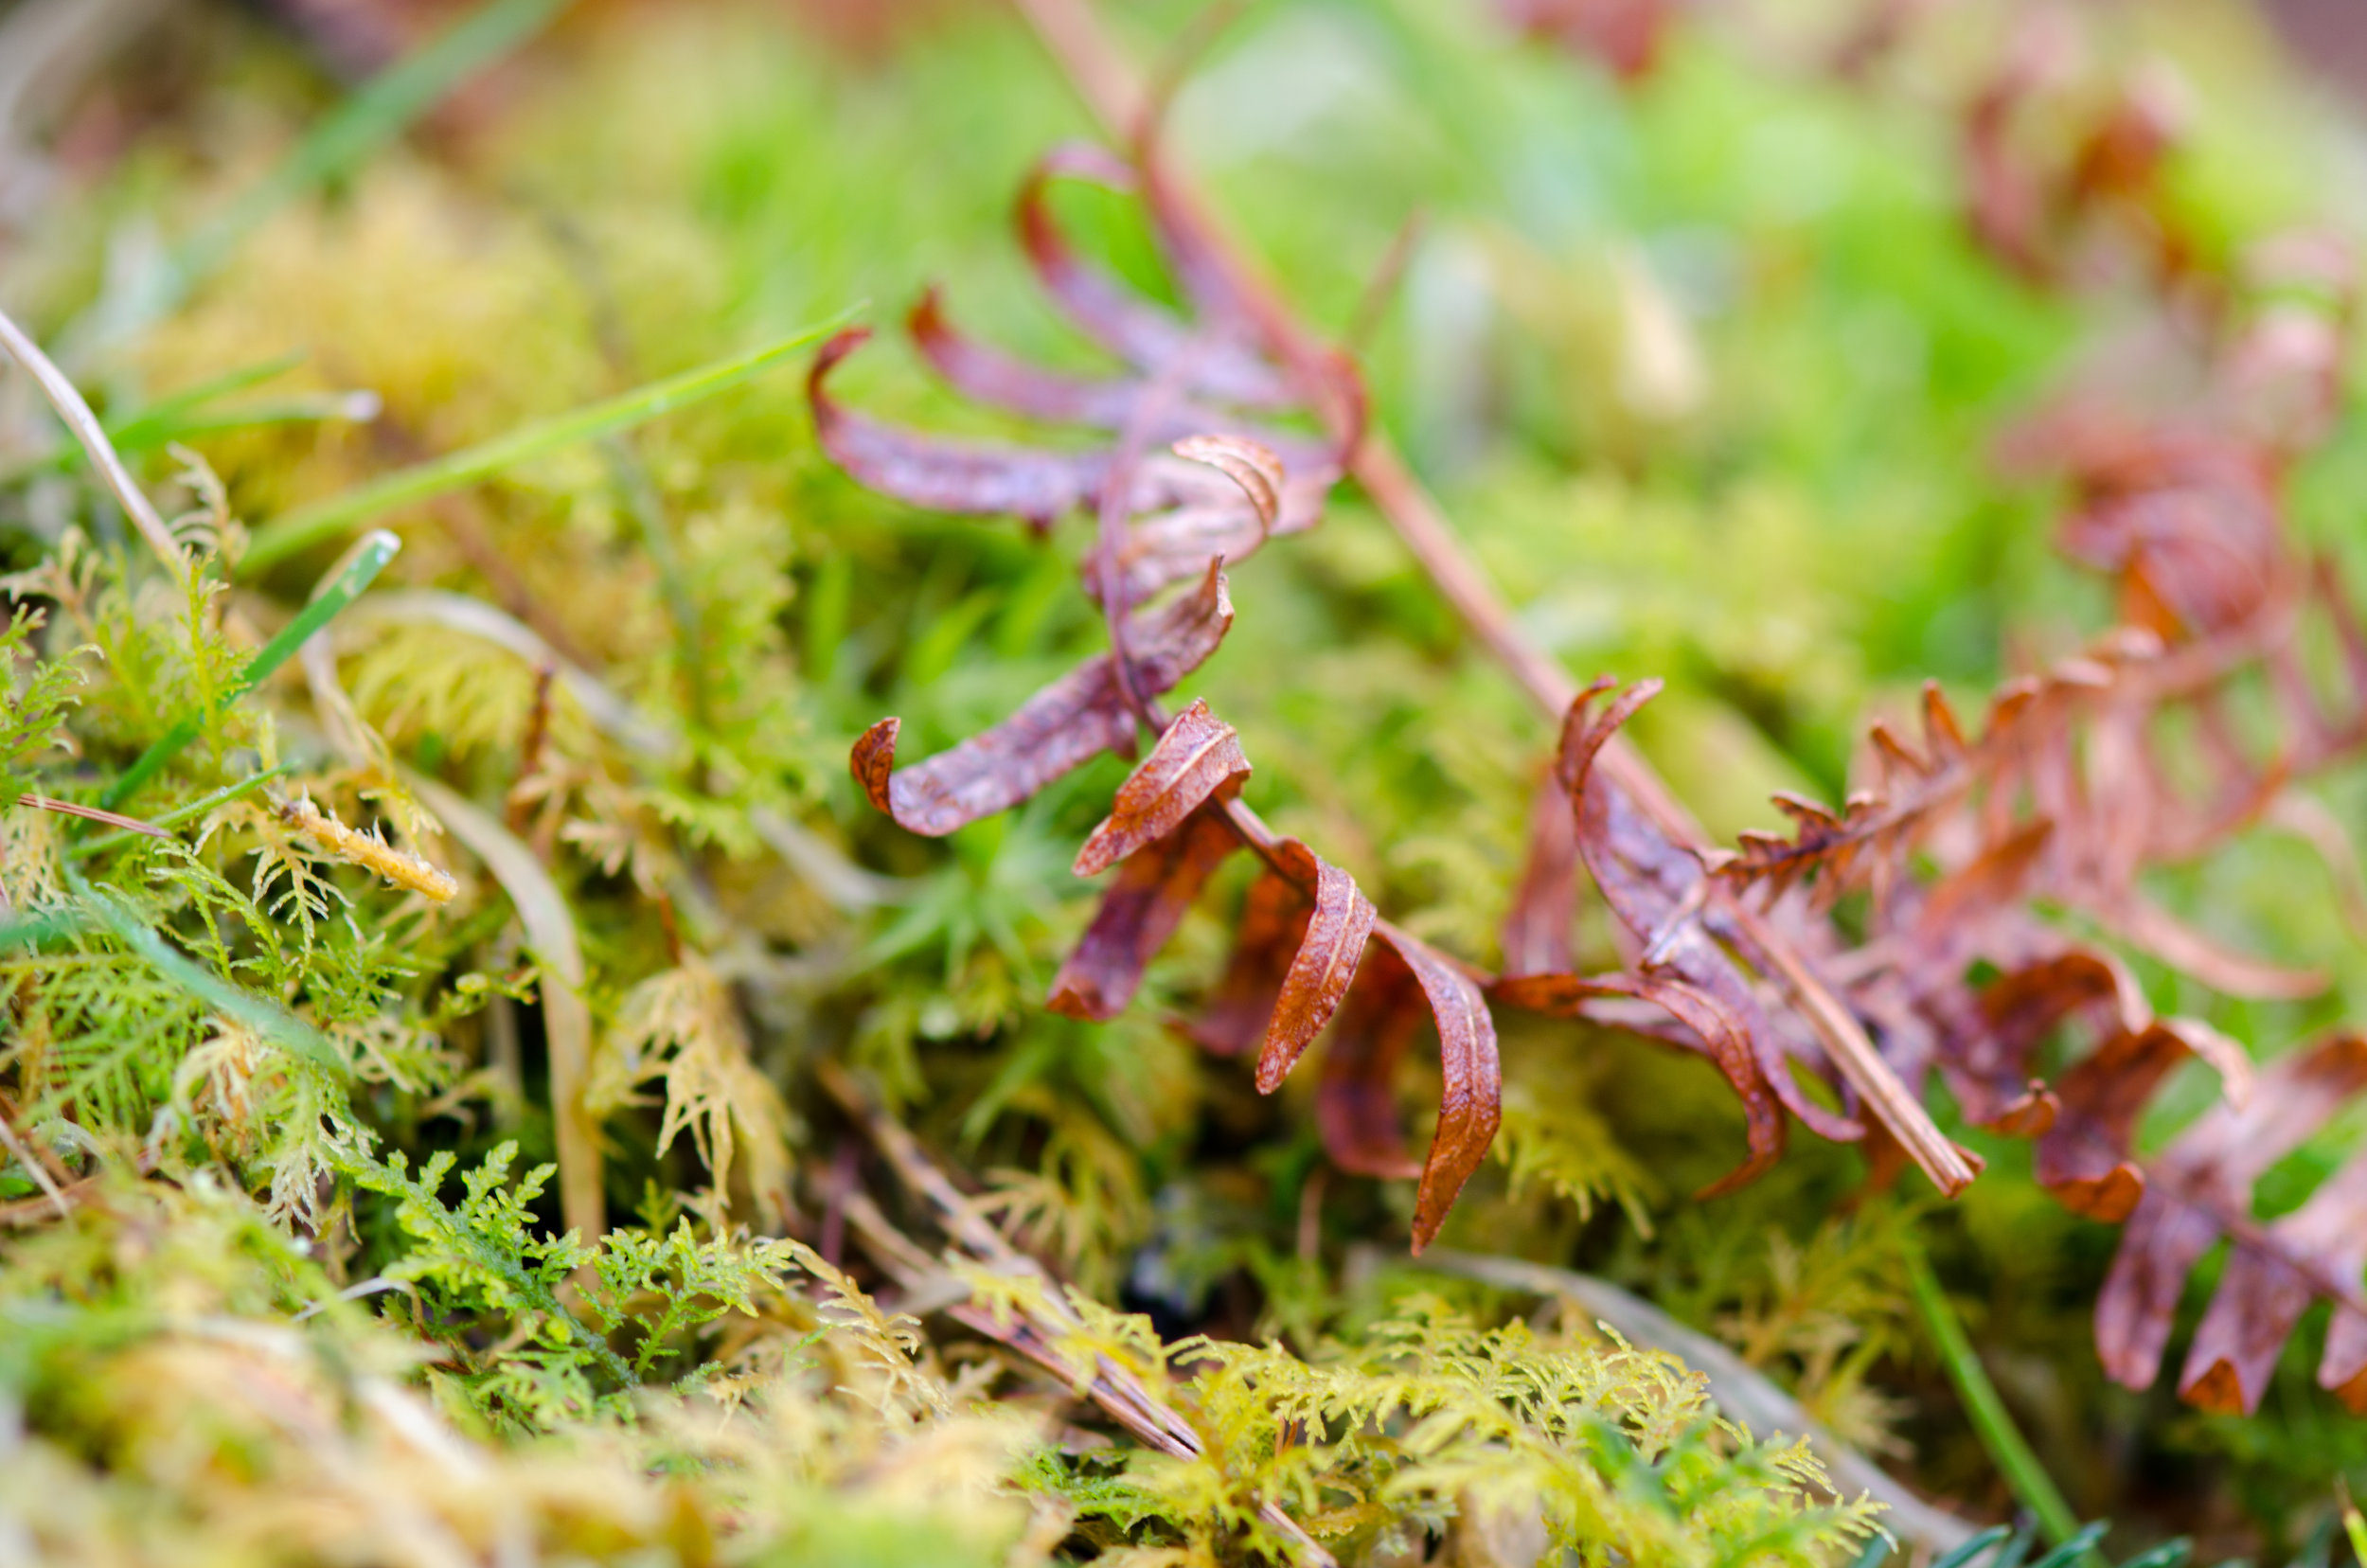 a close-up on some ferns